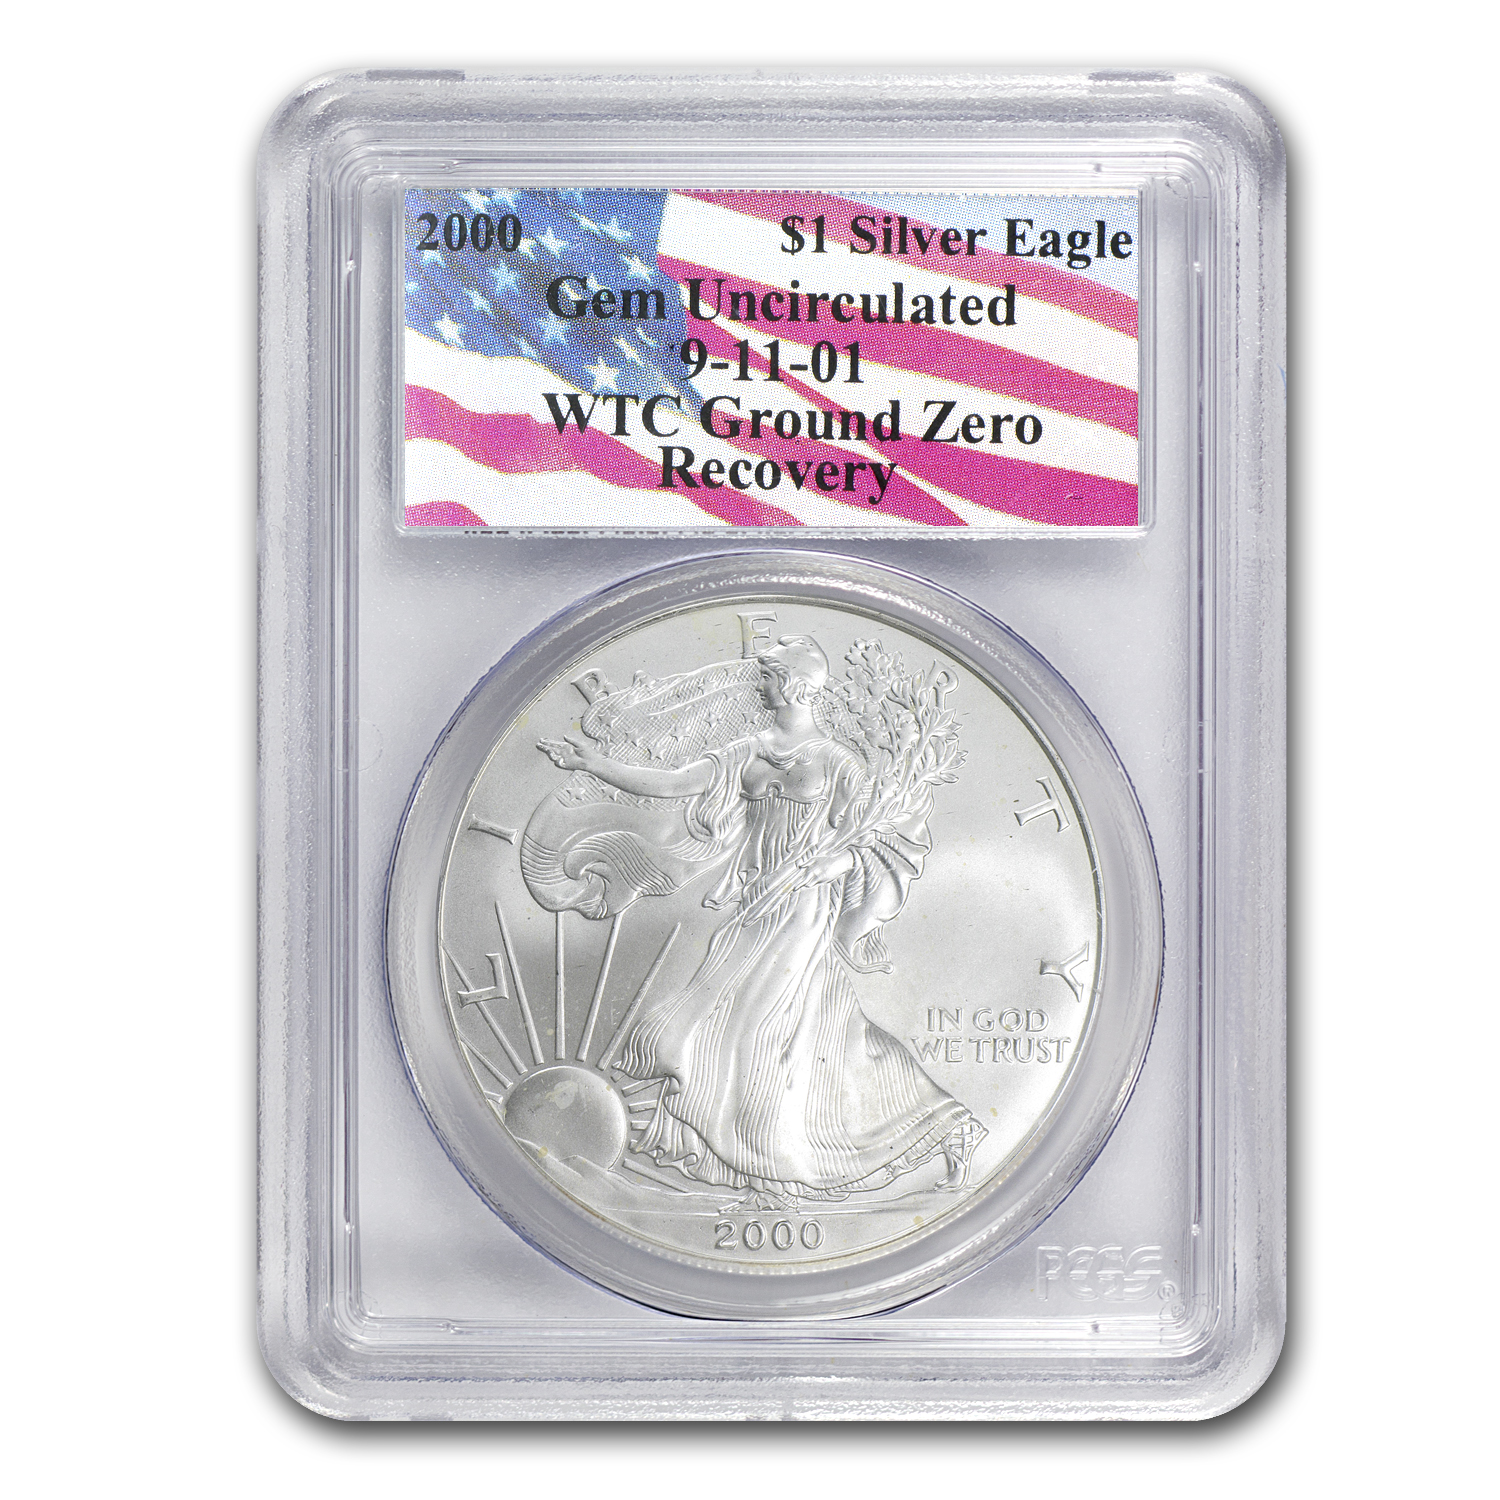 2000 Silver Eagle - Gem Unc PCGS - WTC Ground Zero Recovery